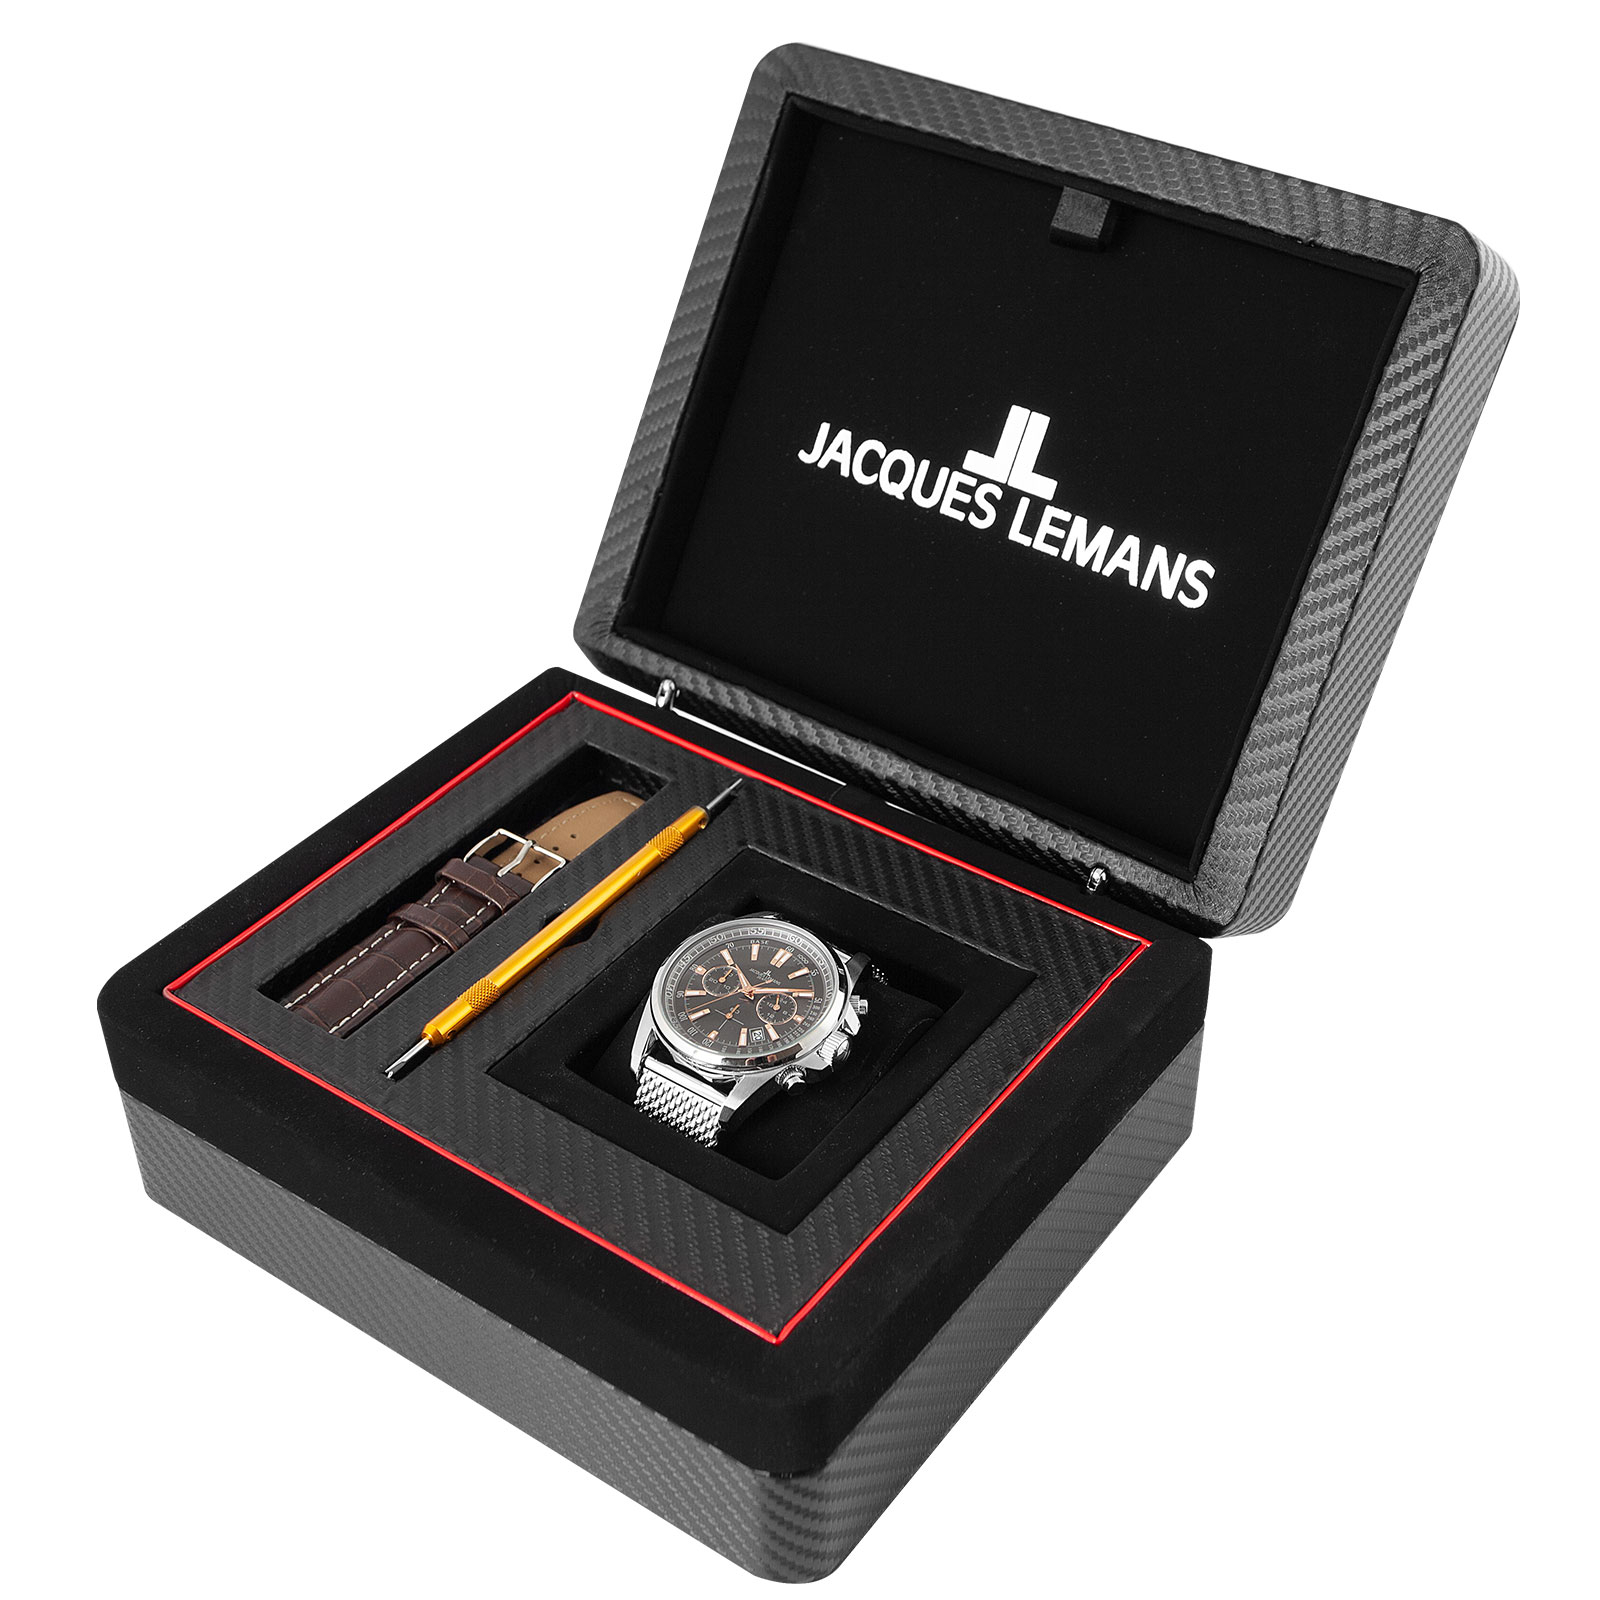 Jacques Lemans Liverpool Herrklocka med extra armband 1-11171WS